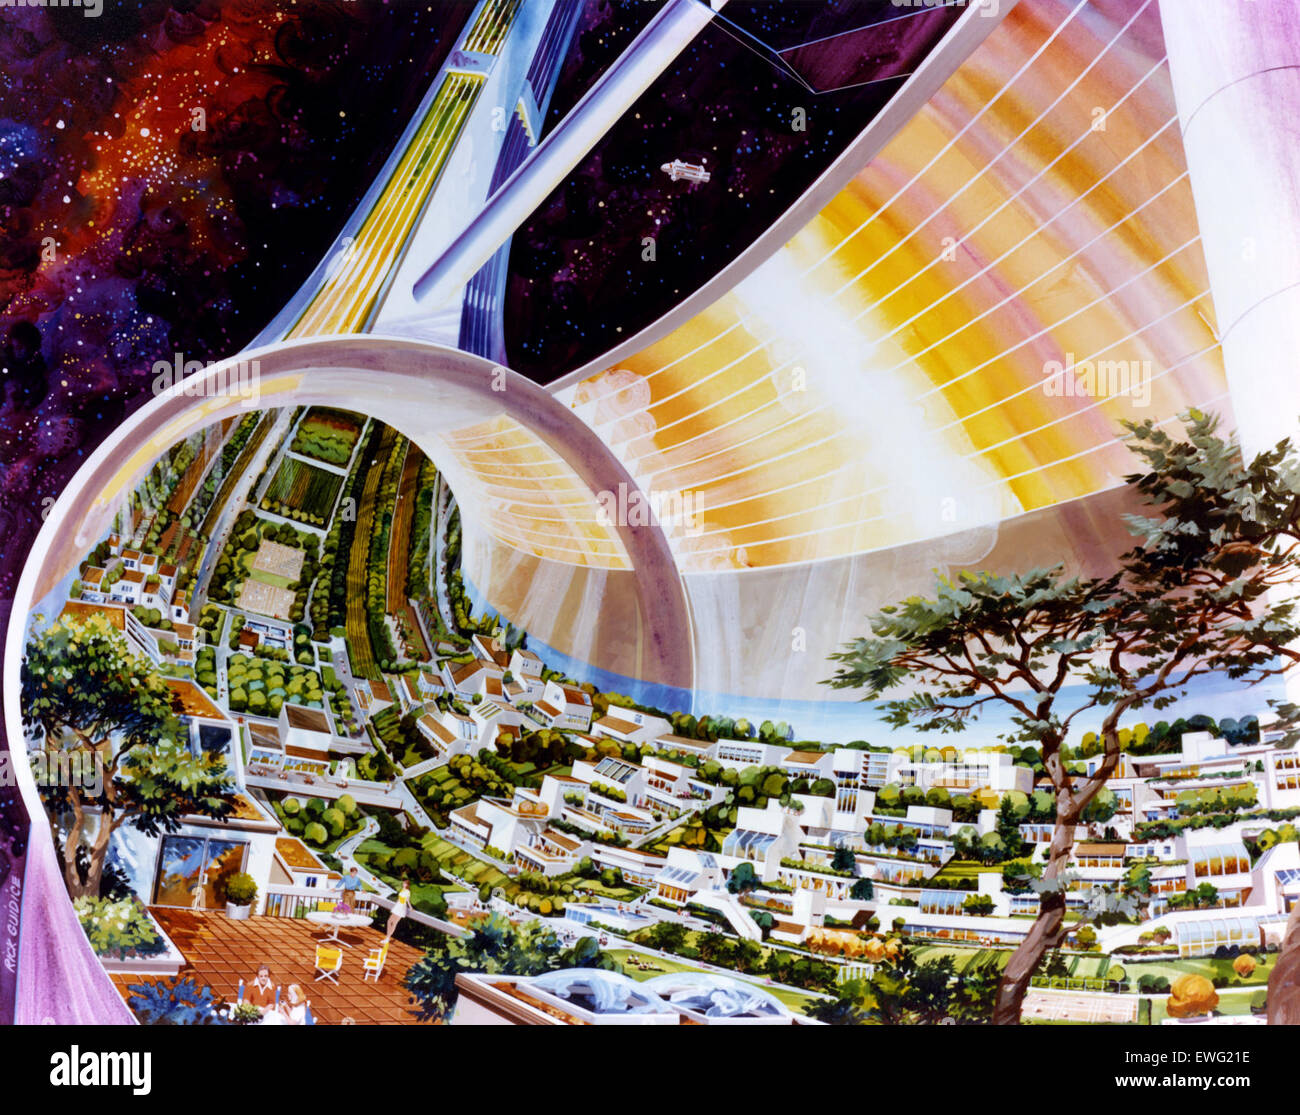 NASA Space Art Raum Kolonisation Raum Kolonie Raum Kolonie Illustration Illustration Space Colony Art aus den 1970er Stockbild